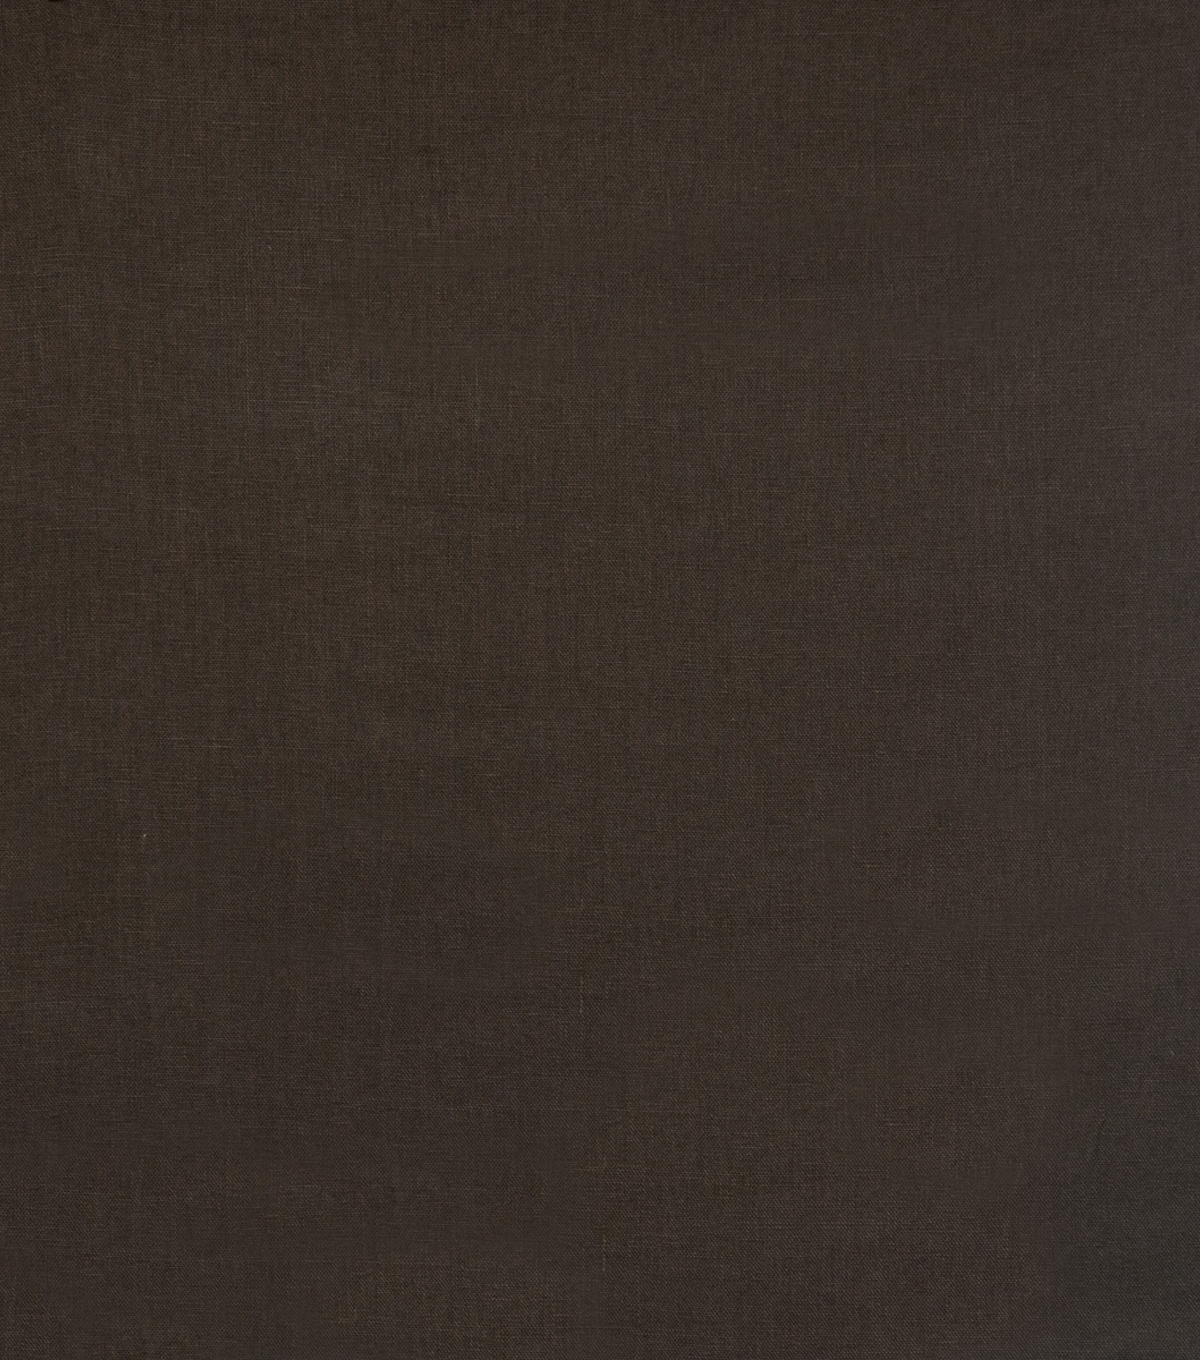 Home Decor 8\u0022x8\u0022 Fabric Swatch-Jaclyn Smith Jigsaw Espresso